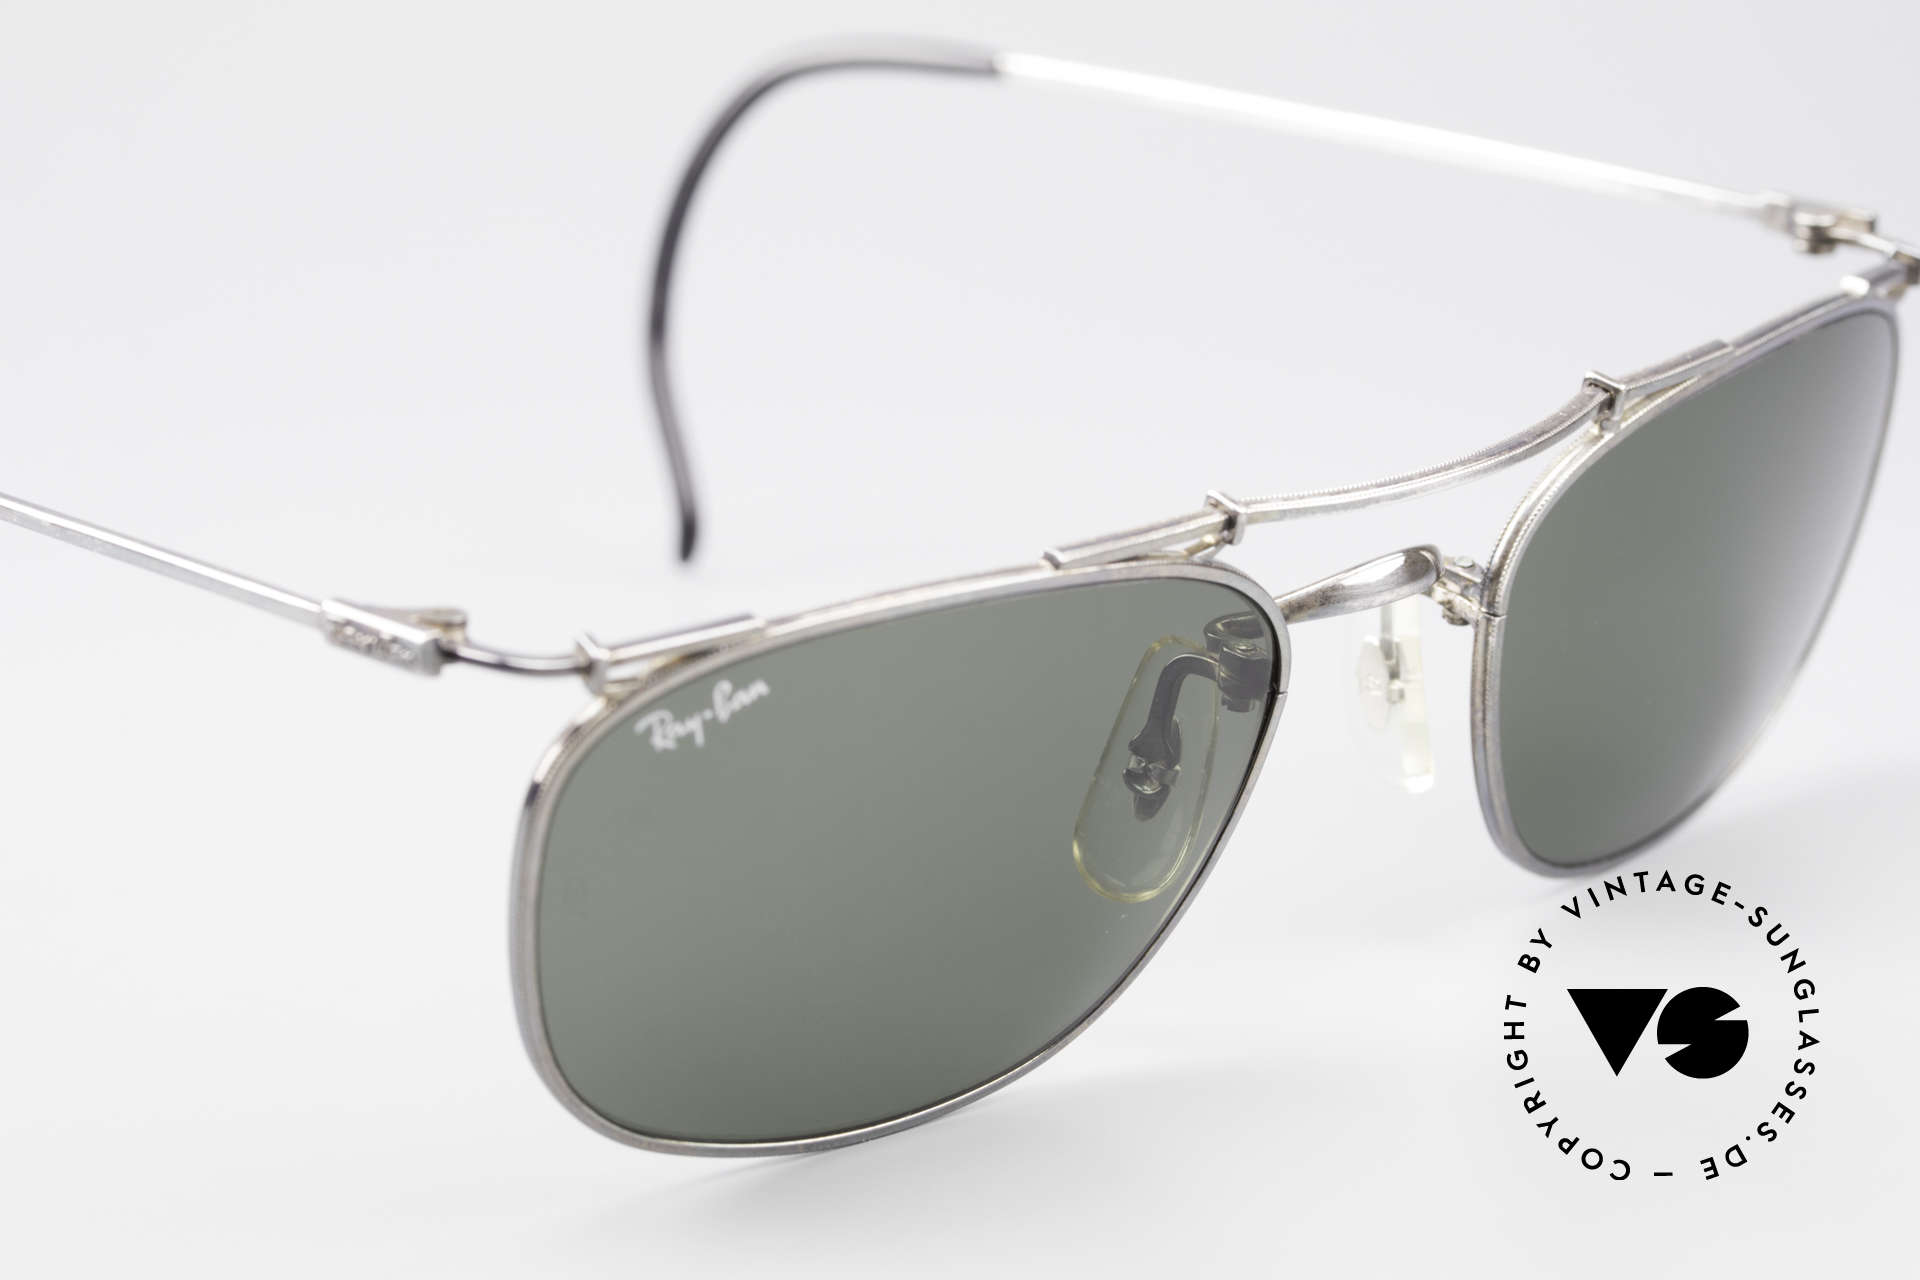 """Ray Ban Deco Metals Carre Old B&L USA 90's Sunglasses, rare antique metal edition (frame finish looks """"old""""), Made for Men and Women"""